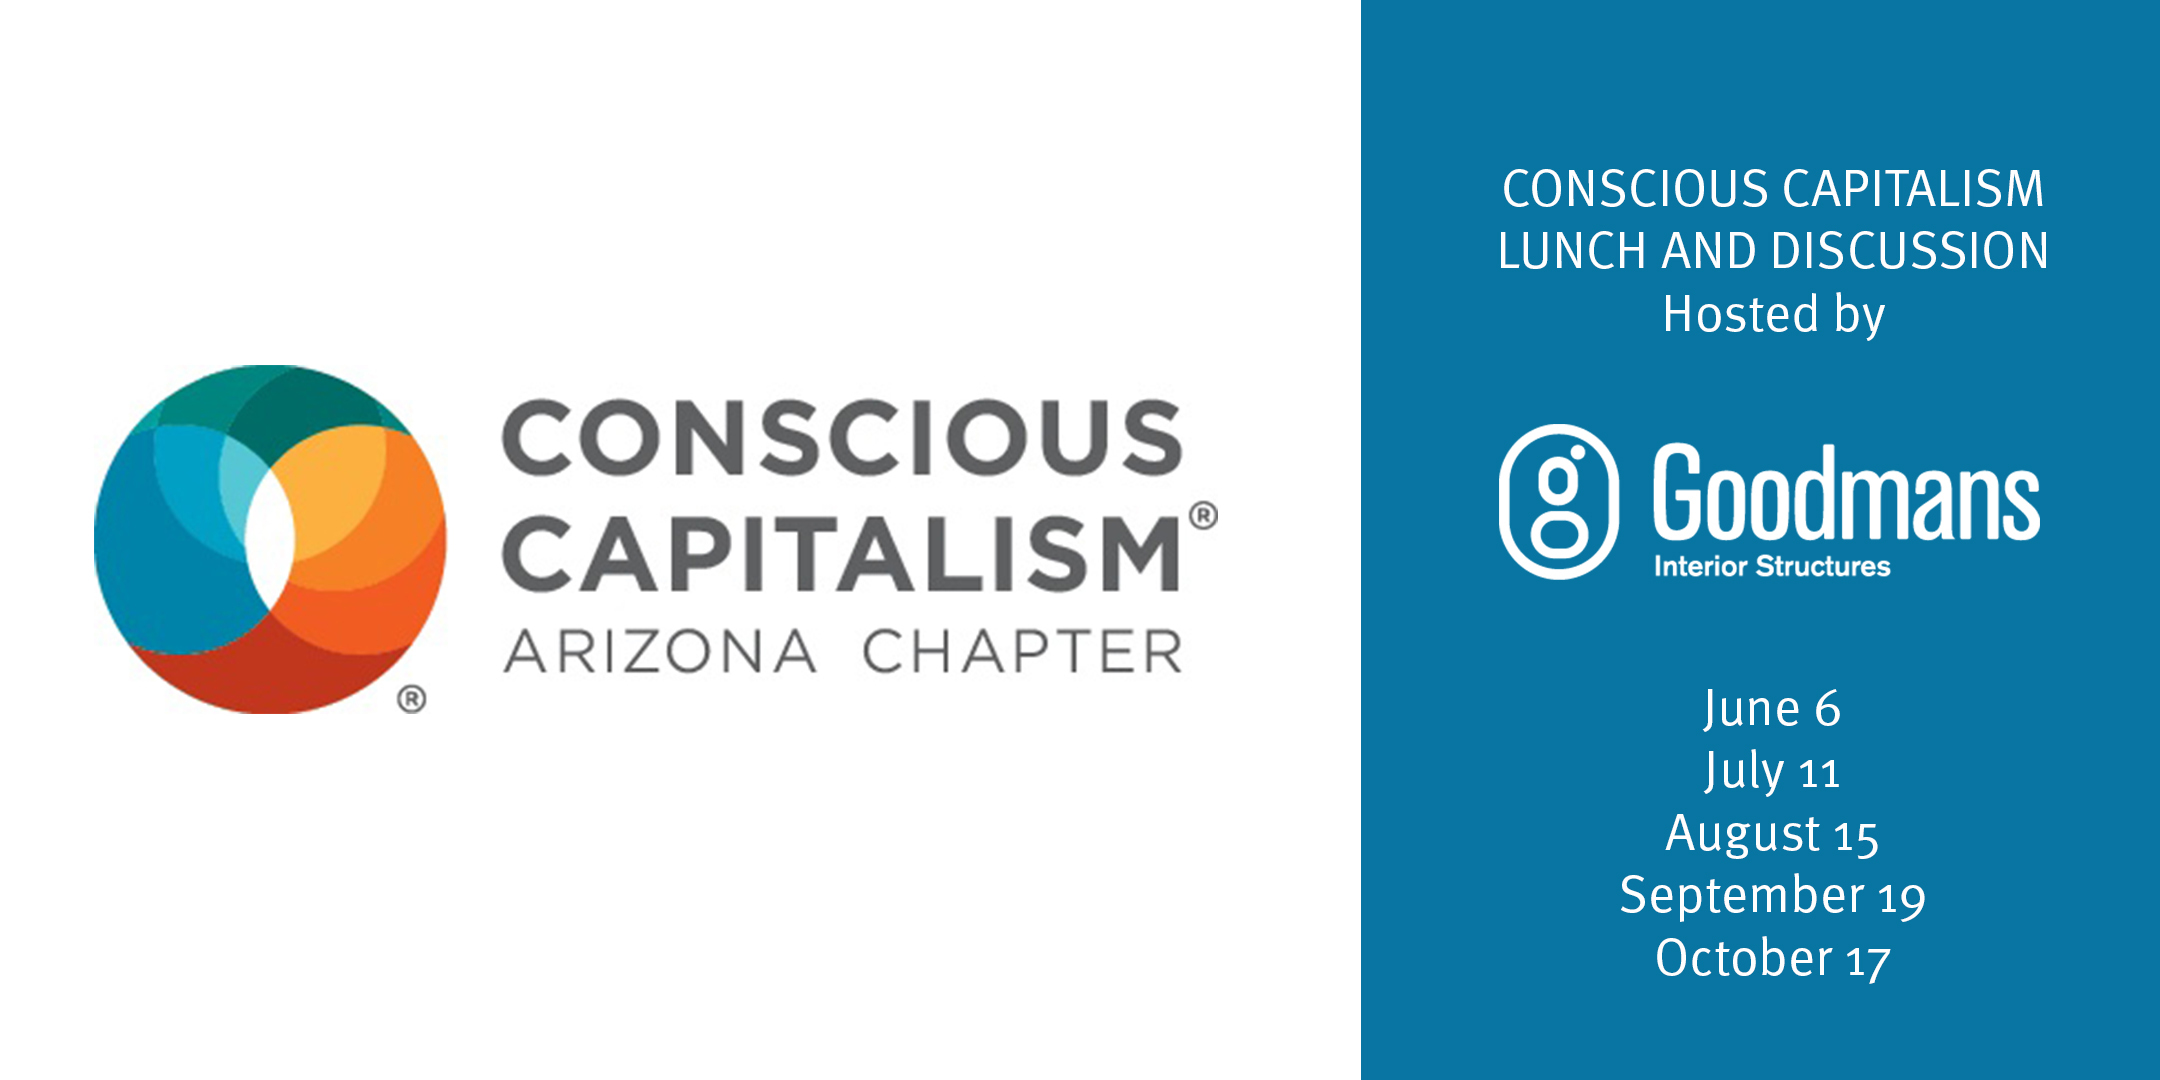 Conscious Capitalism Lunch And Discussion